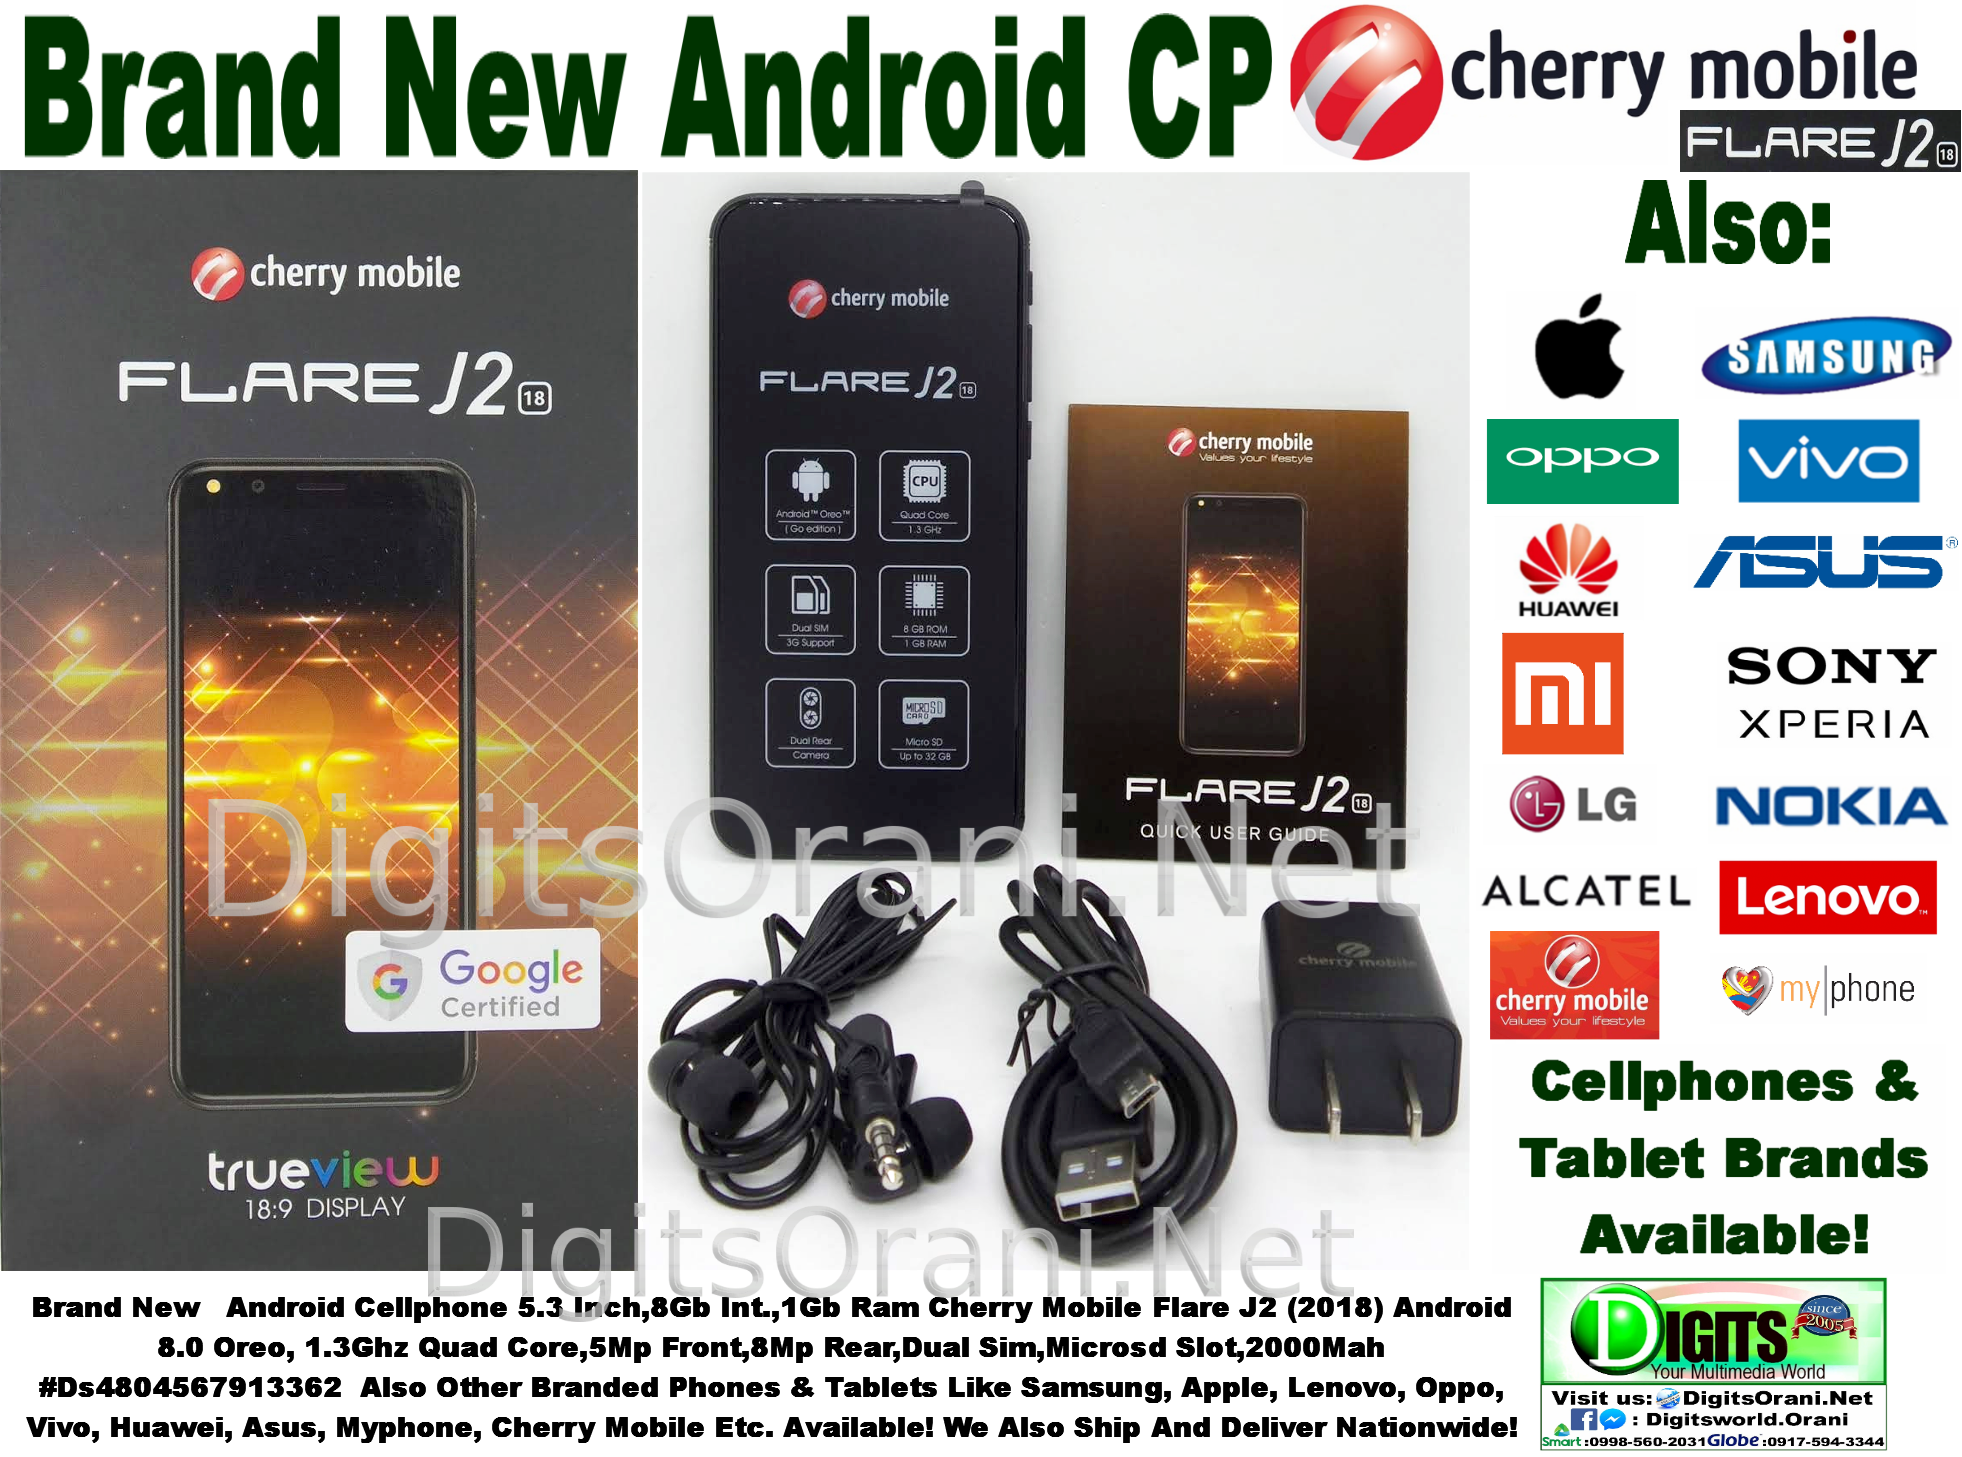 Android Cellphone 5 3 Inch,8Gb Int ,1Gb Ram Cherry Mobile Flare J2 (2018)  Android 8 0 Oreo, 1 3Ghz Quad Core,5Mp Front,8Mp Rear,Dual Sim,Microsd